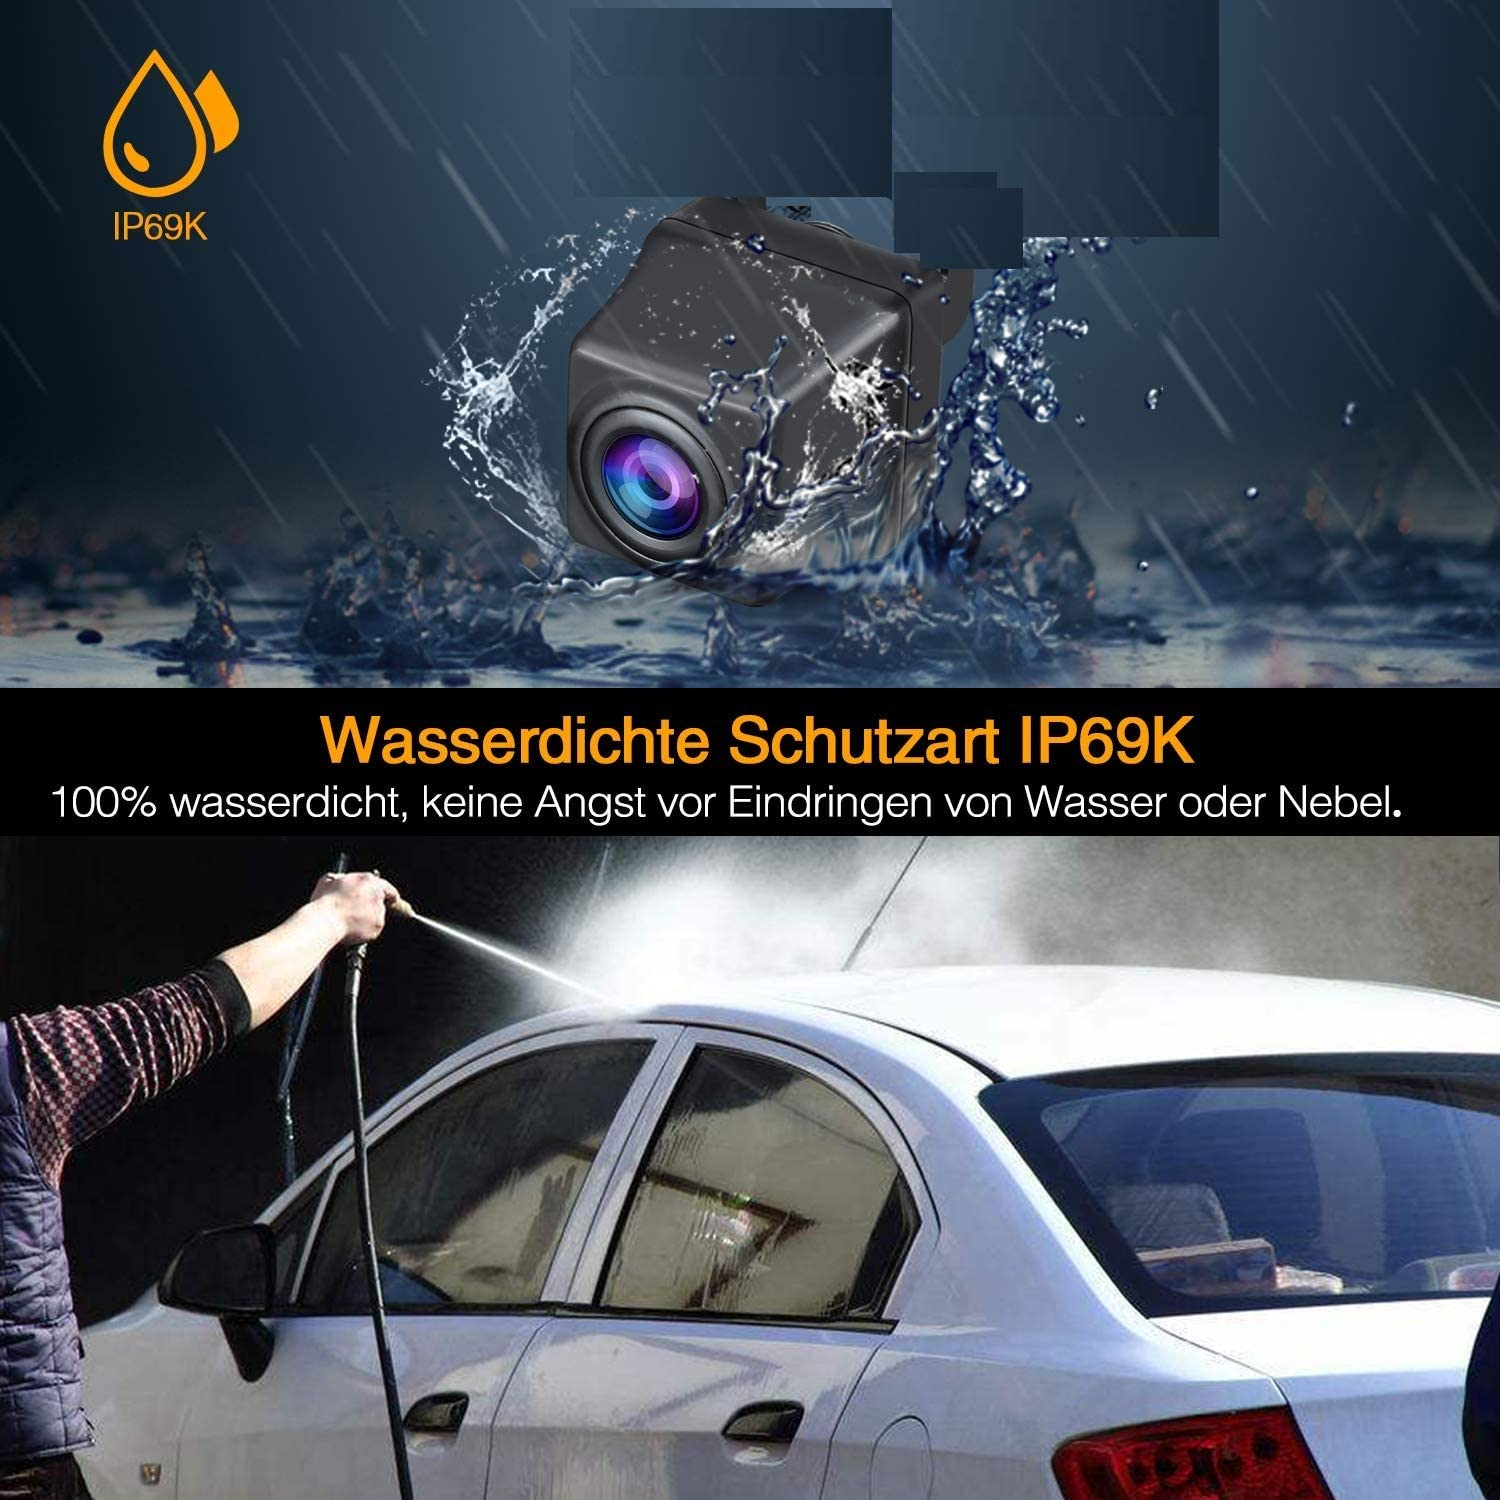 Rear Reversing Backup Camera Rearview Tailgate Handle Replacement Camera Night Vision Waterproof for Audi A3 A4 RS3 S3 2017 Facelift MQB 8V SKODA Octavia MK3 A7 5E 2016-2018